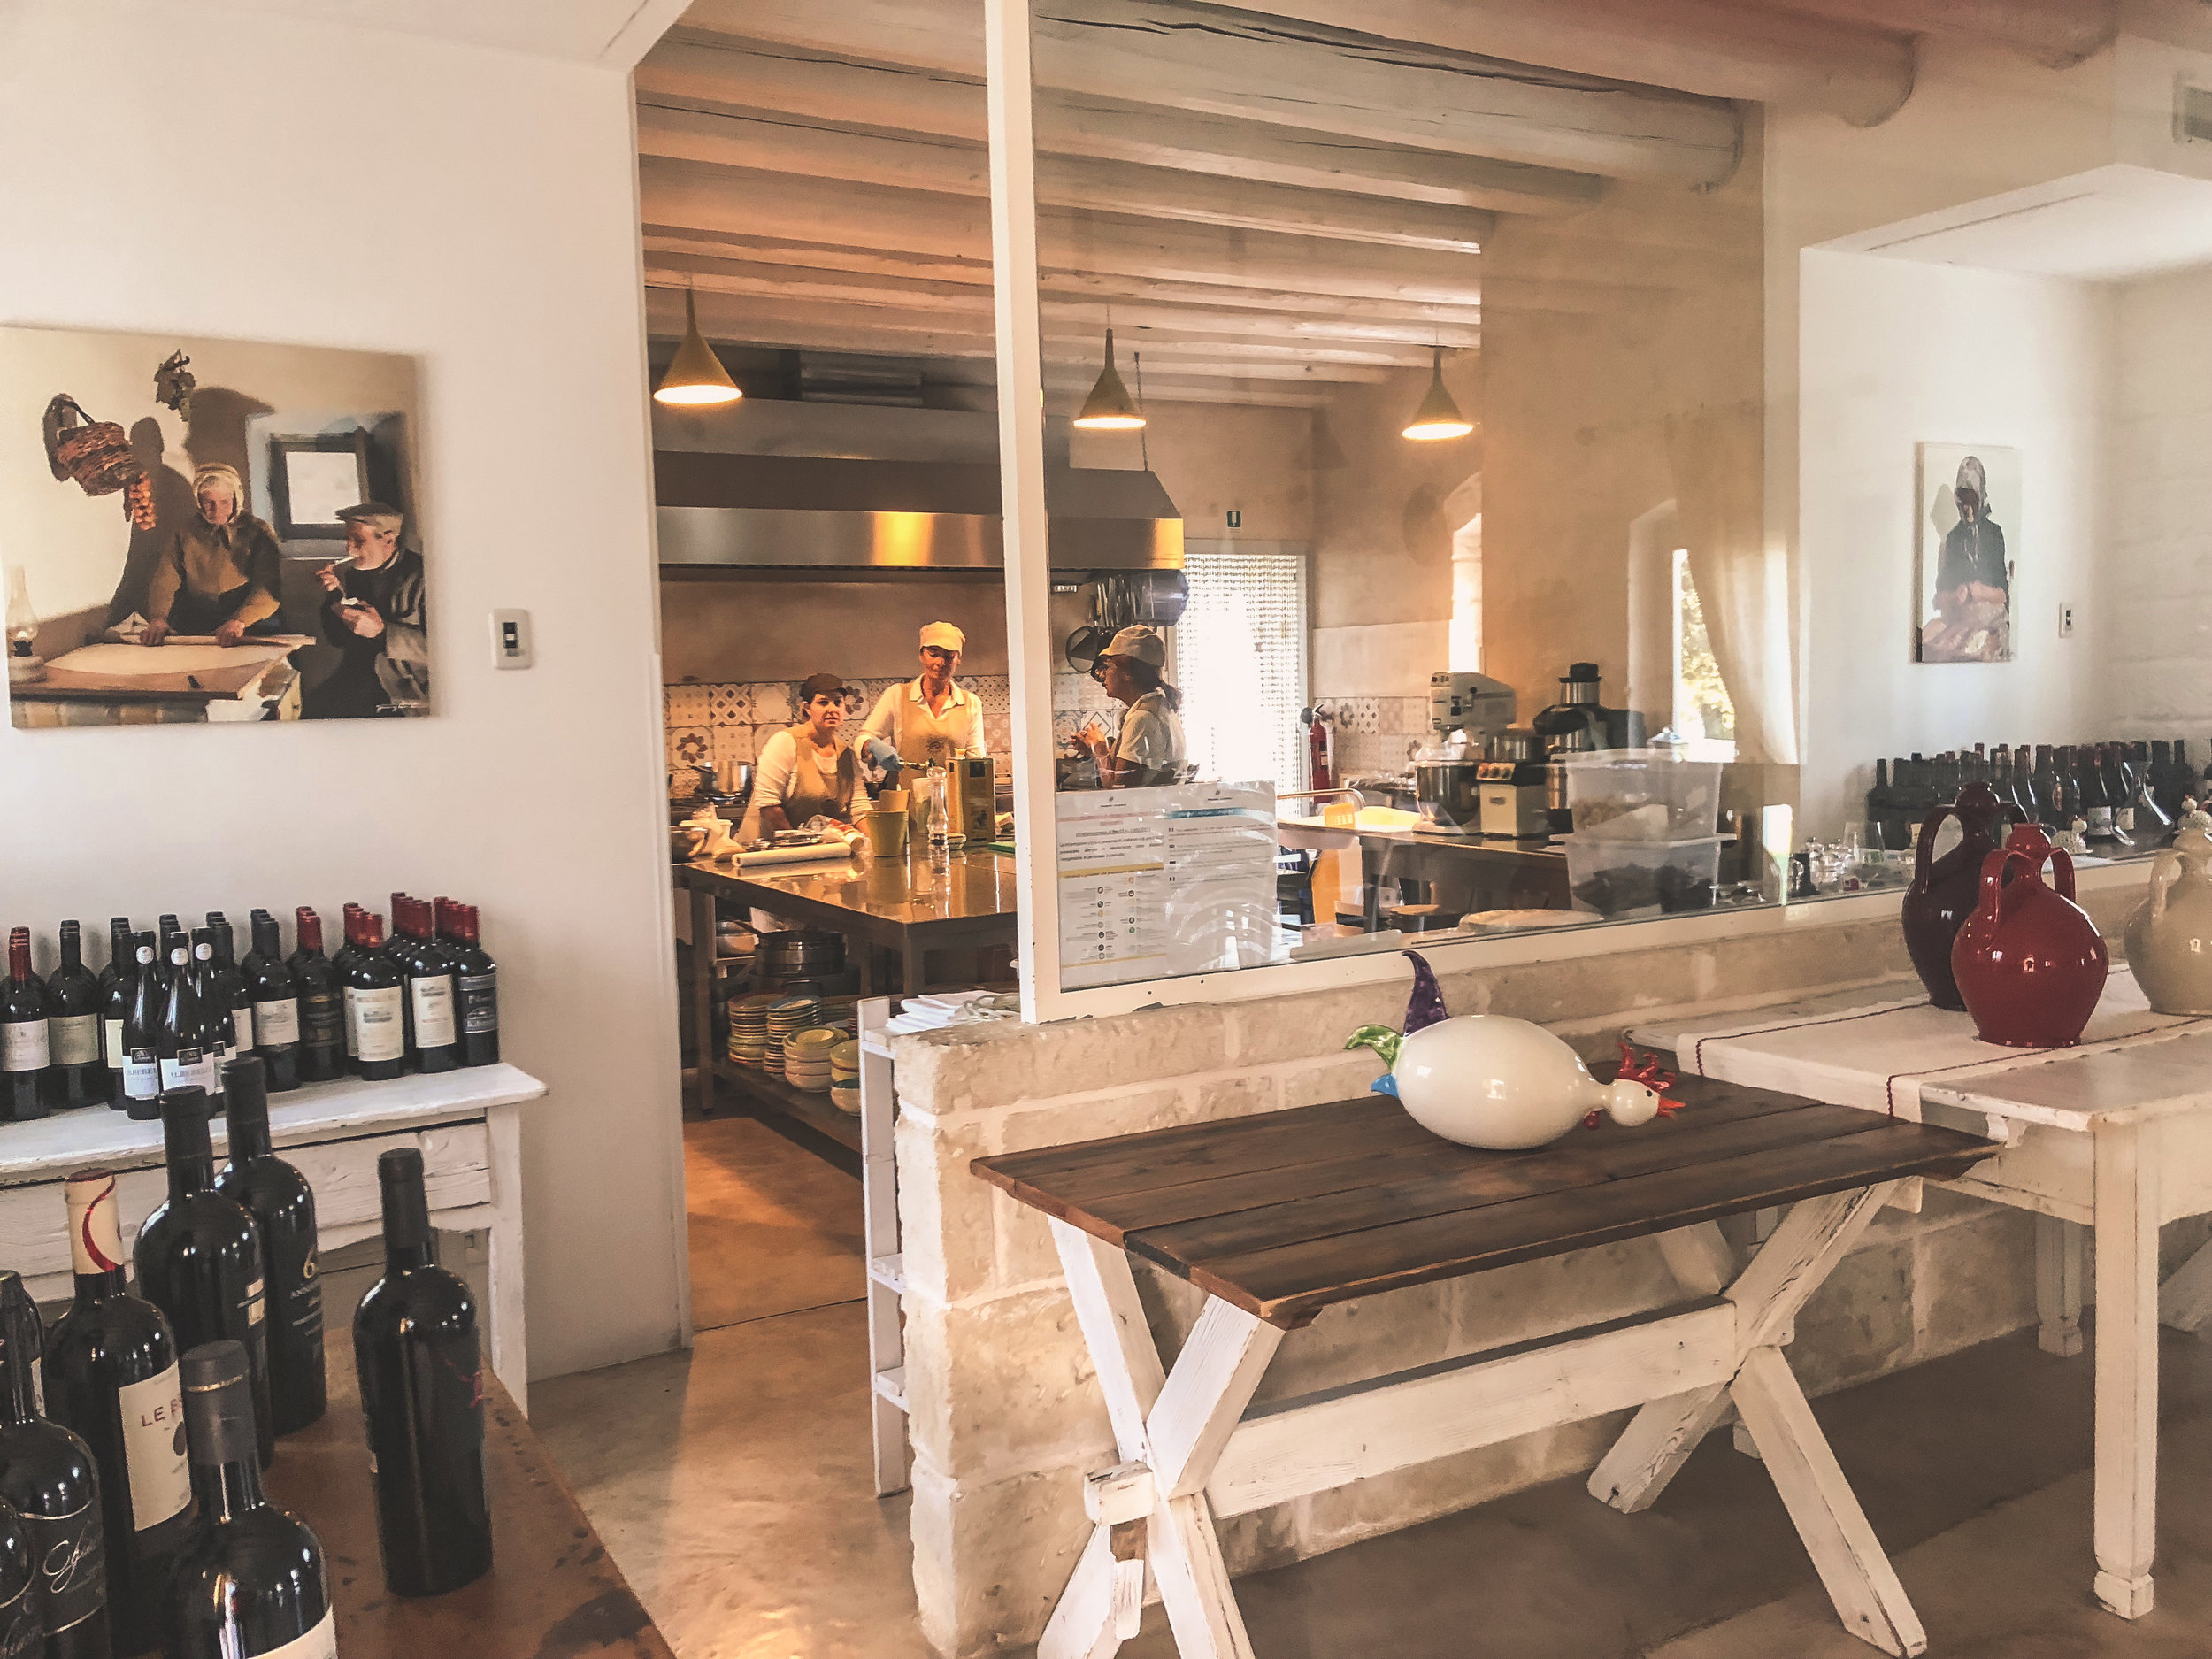 LA CUCINA-WHERE MAGIC HAPPENS, masseria cervarolo, puglia.